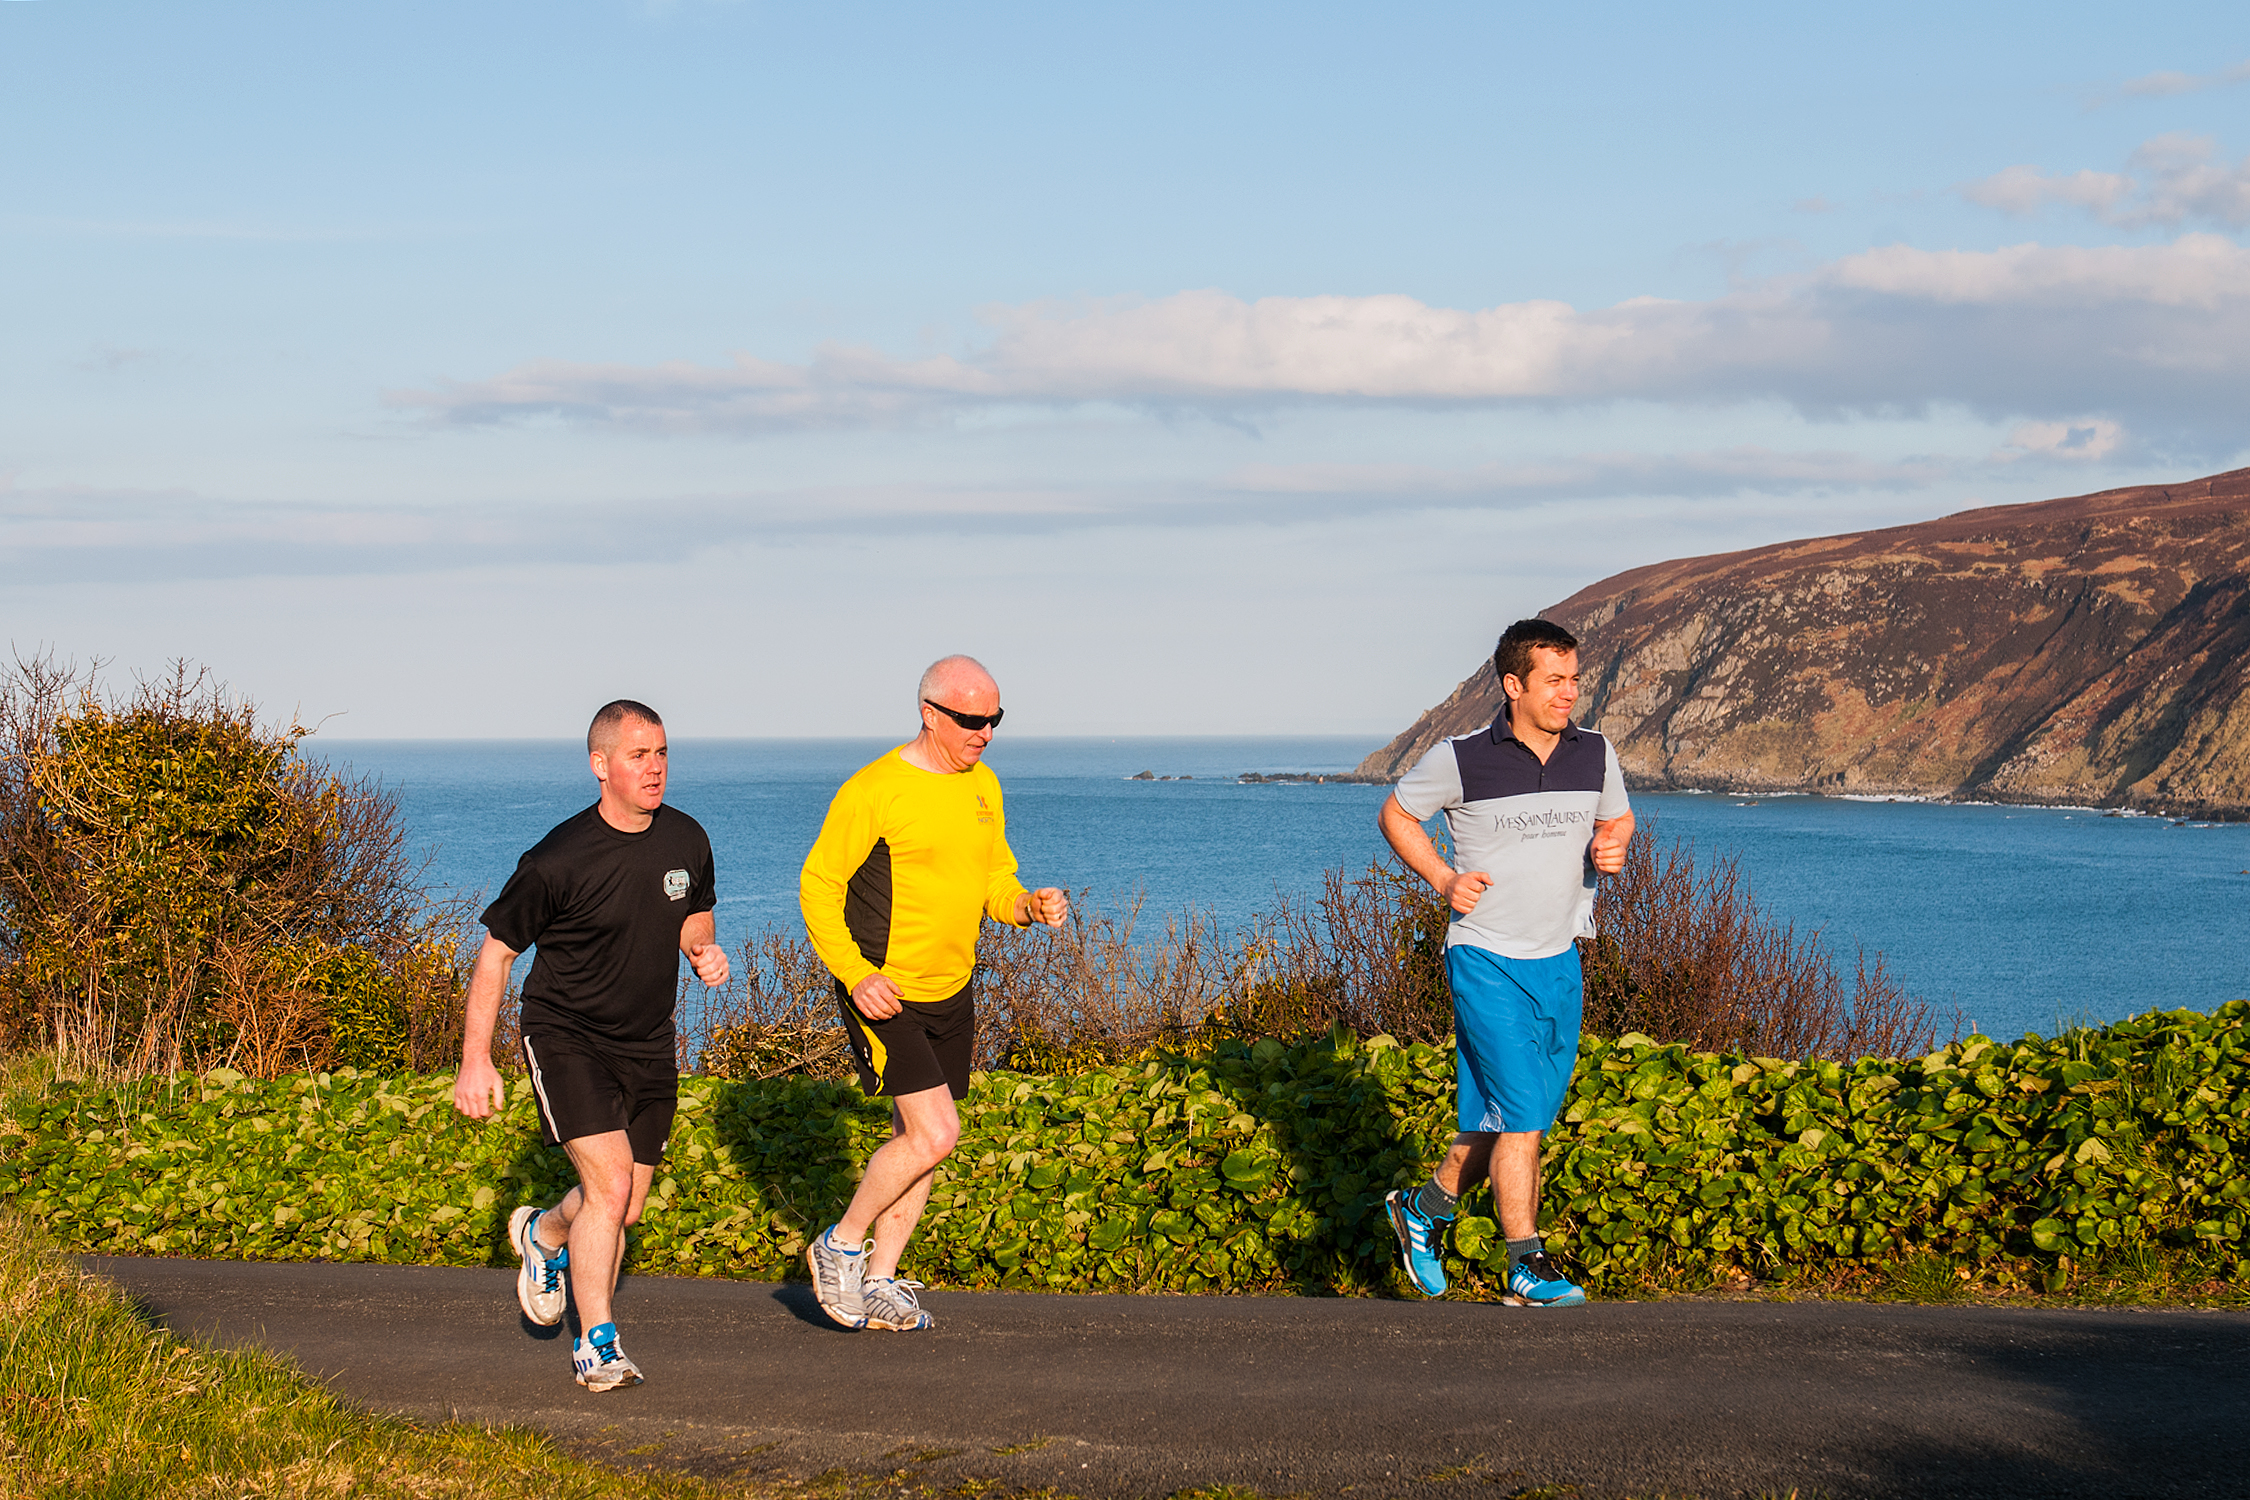 Marathon festival of running in Inishowen: 18-19 June